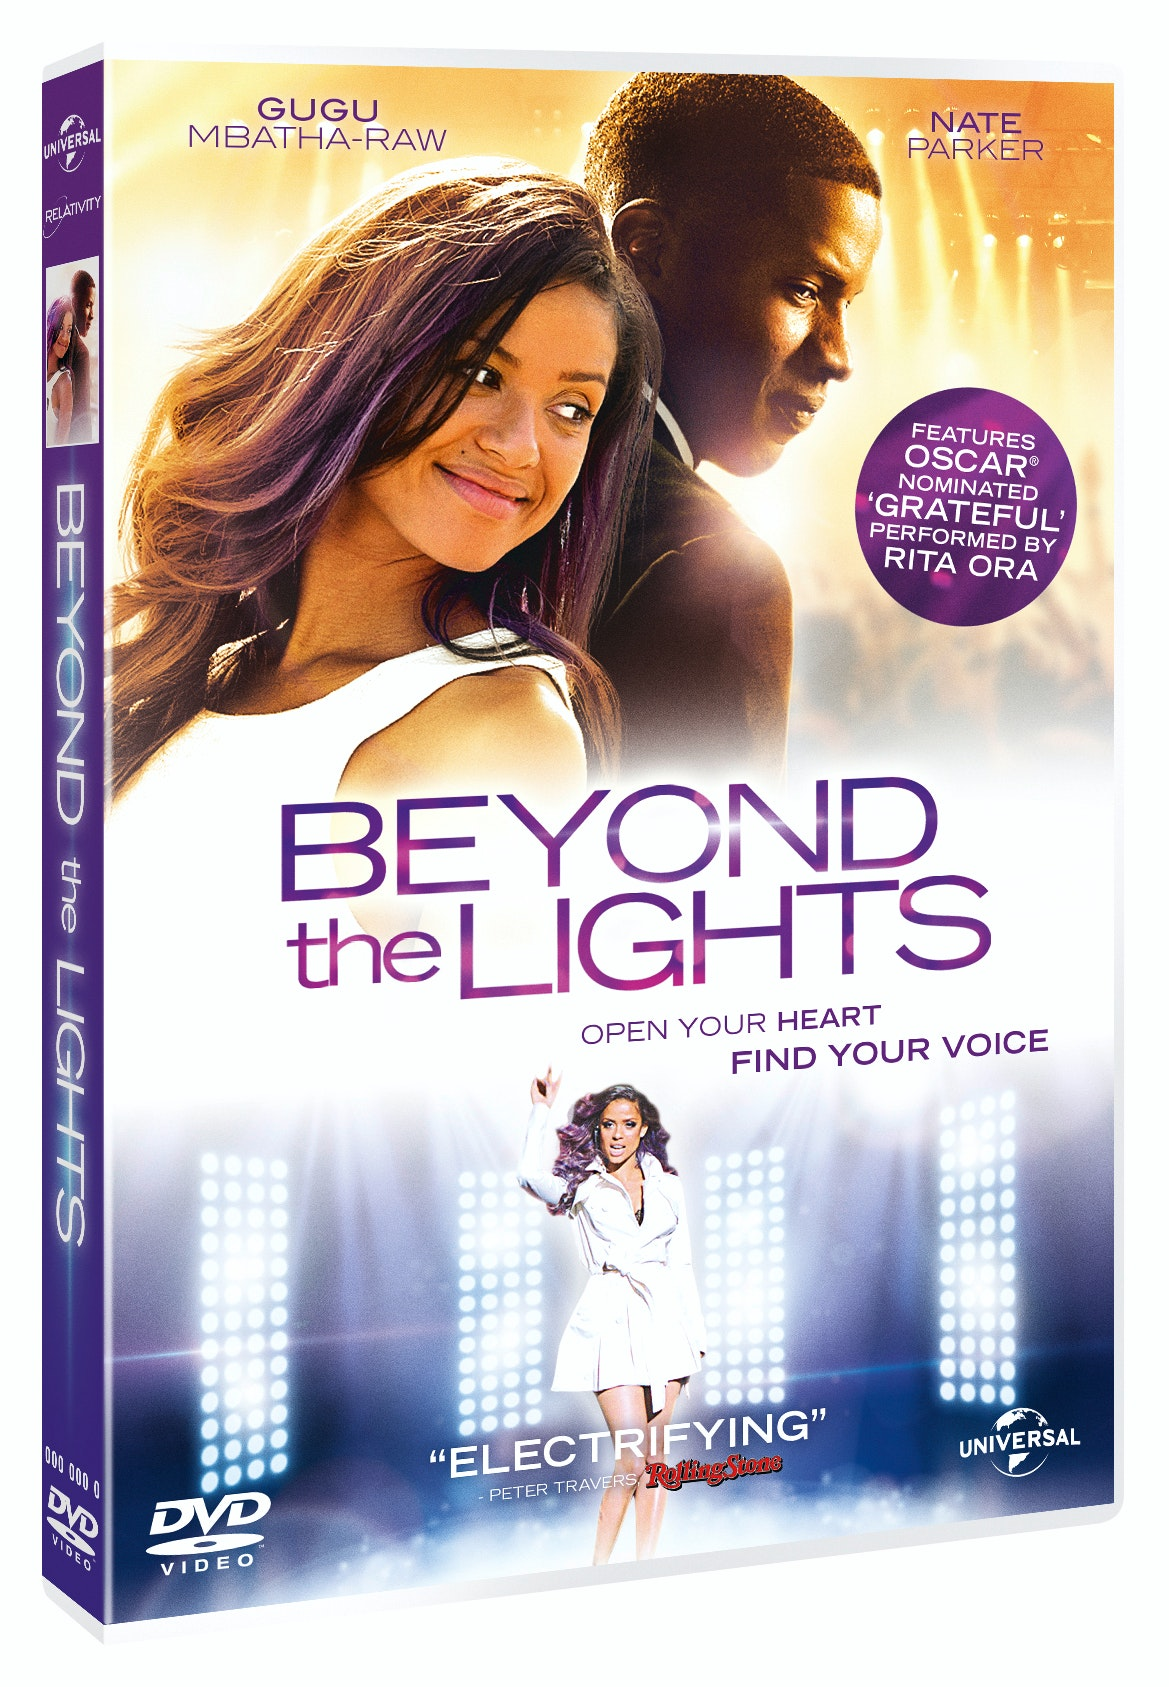 Beyond the Lights DVD! sweepstakes